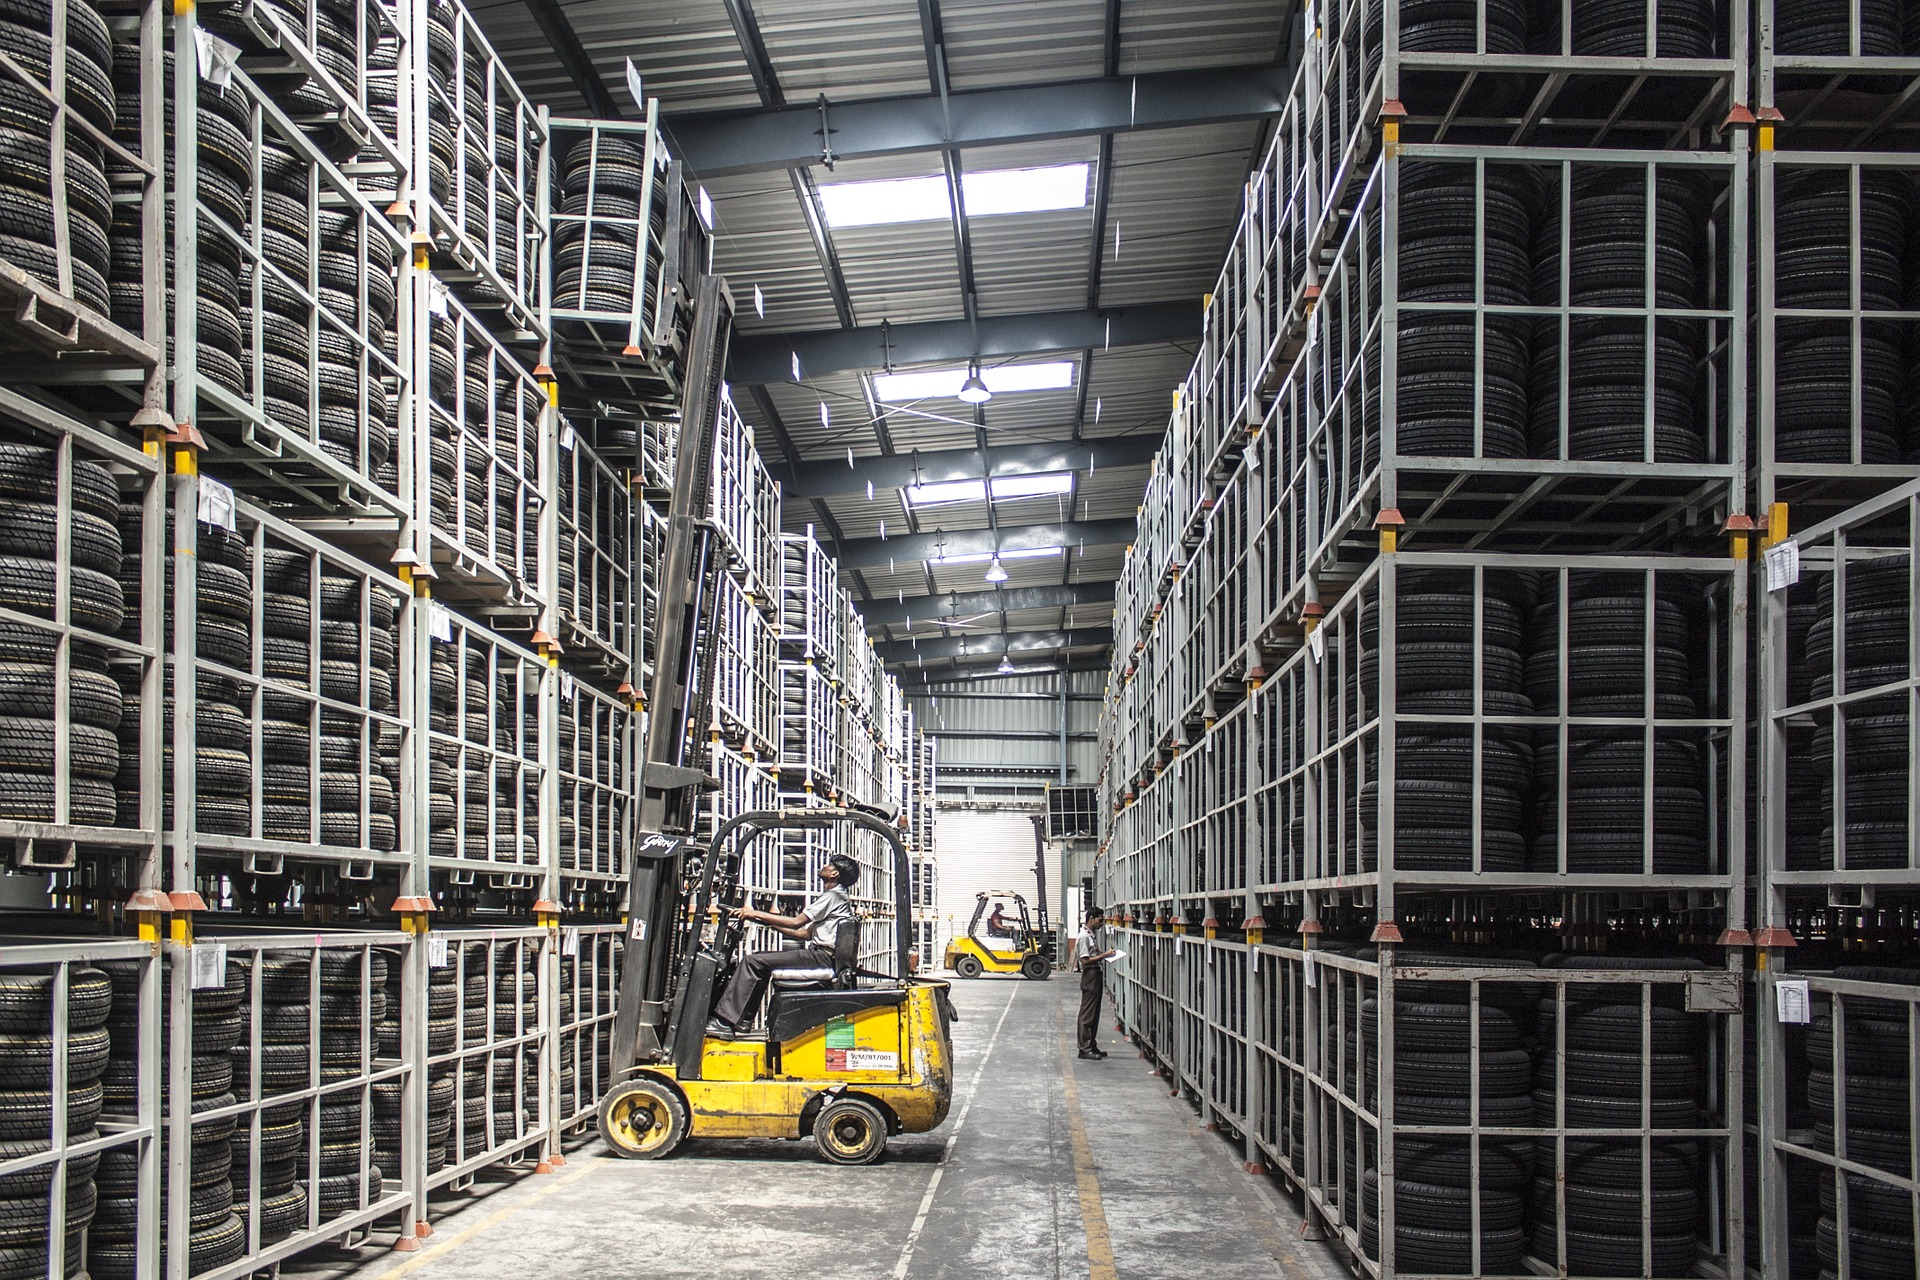 Image of a forklift in a warehouse